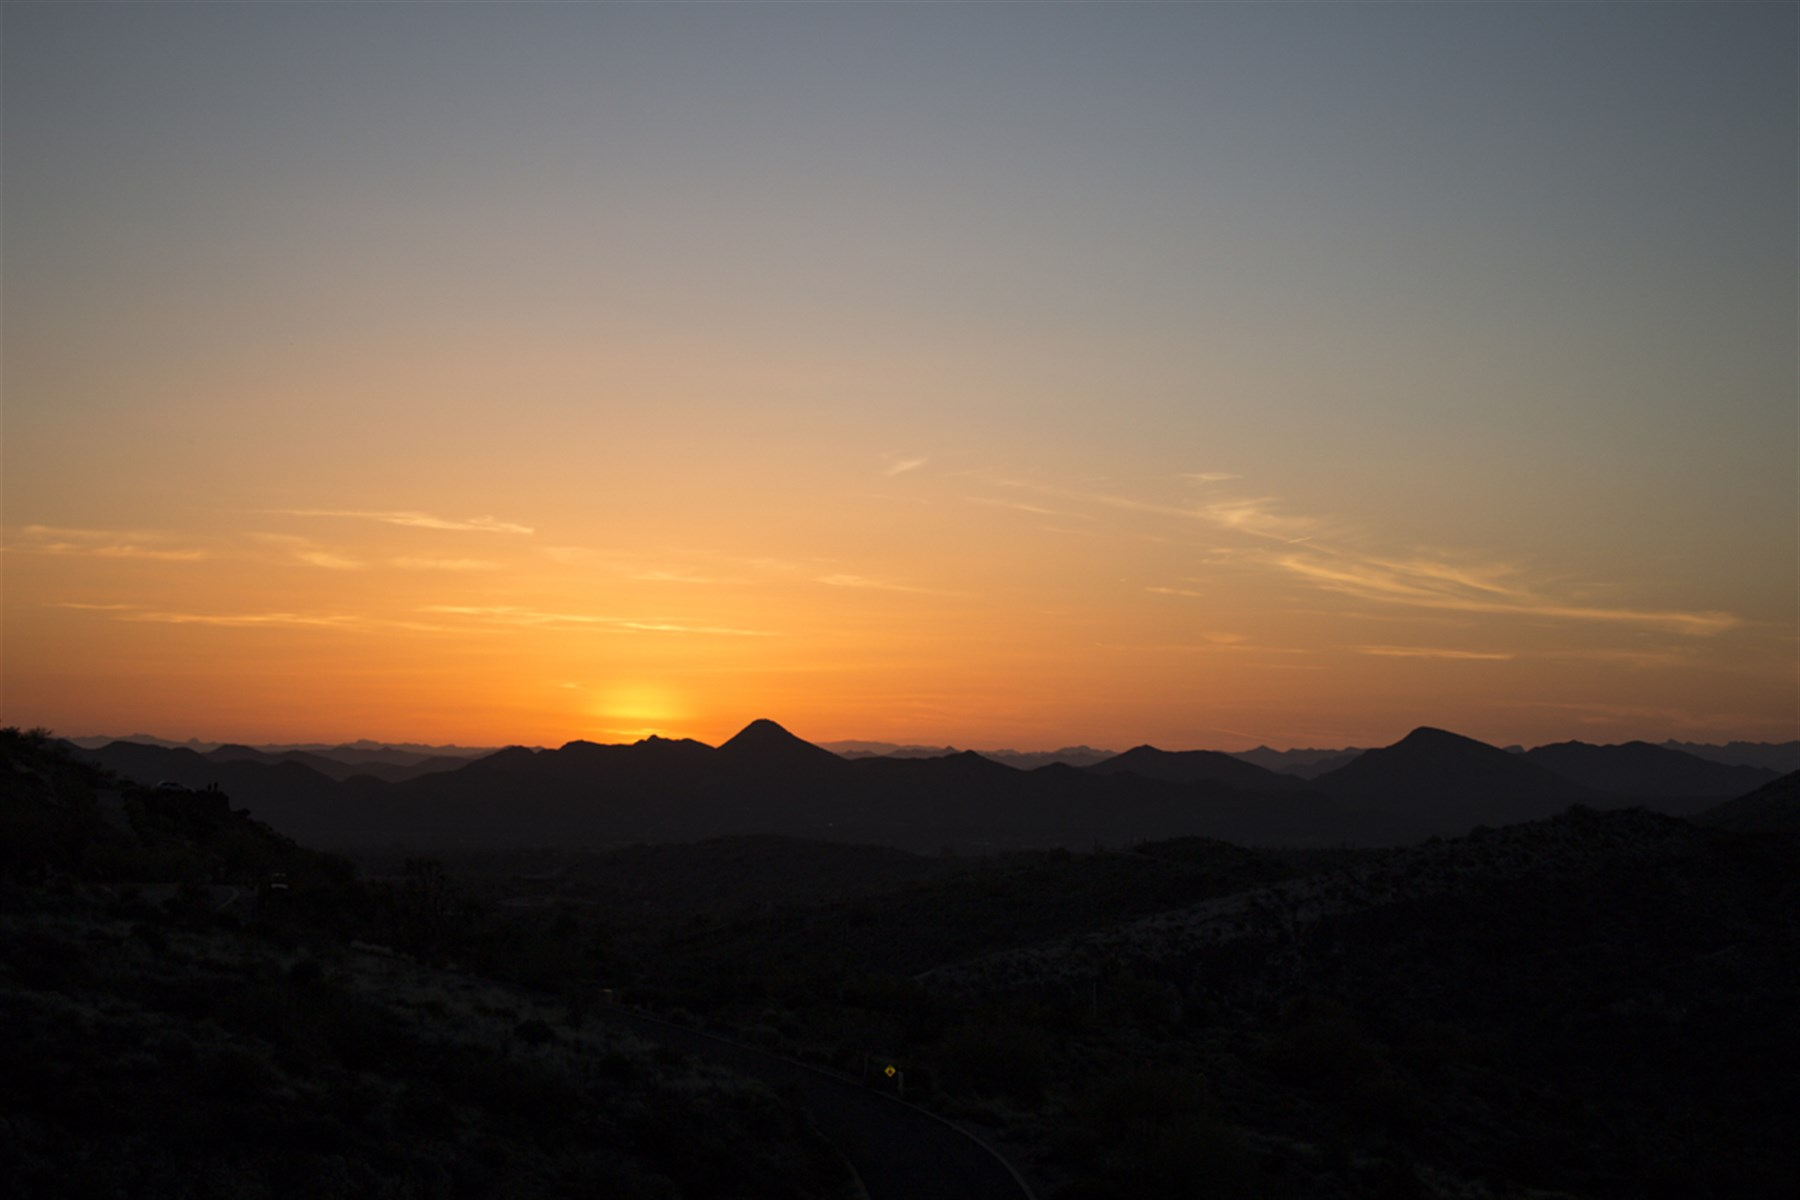 Land for Sale at Home site situated high on the slope in Village of Lone Mountain. 9502 E AW TILLINGHAST RD 39 Scottsdale, Arizona, 85262 United States